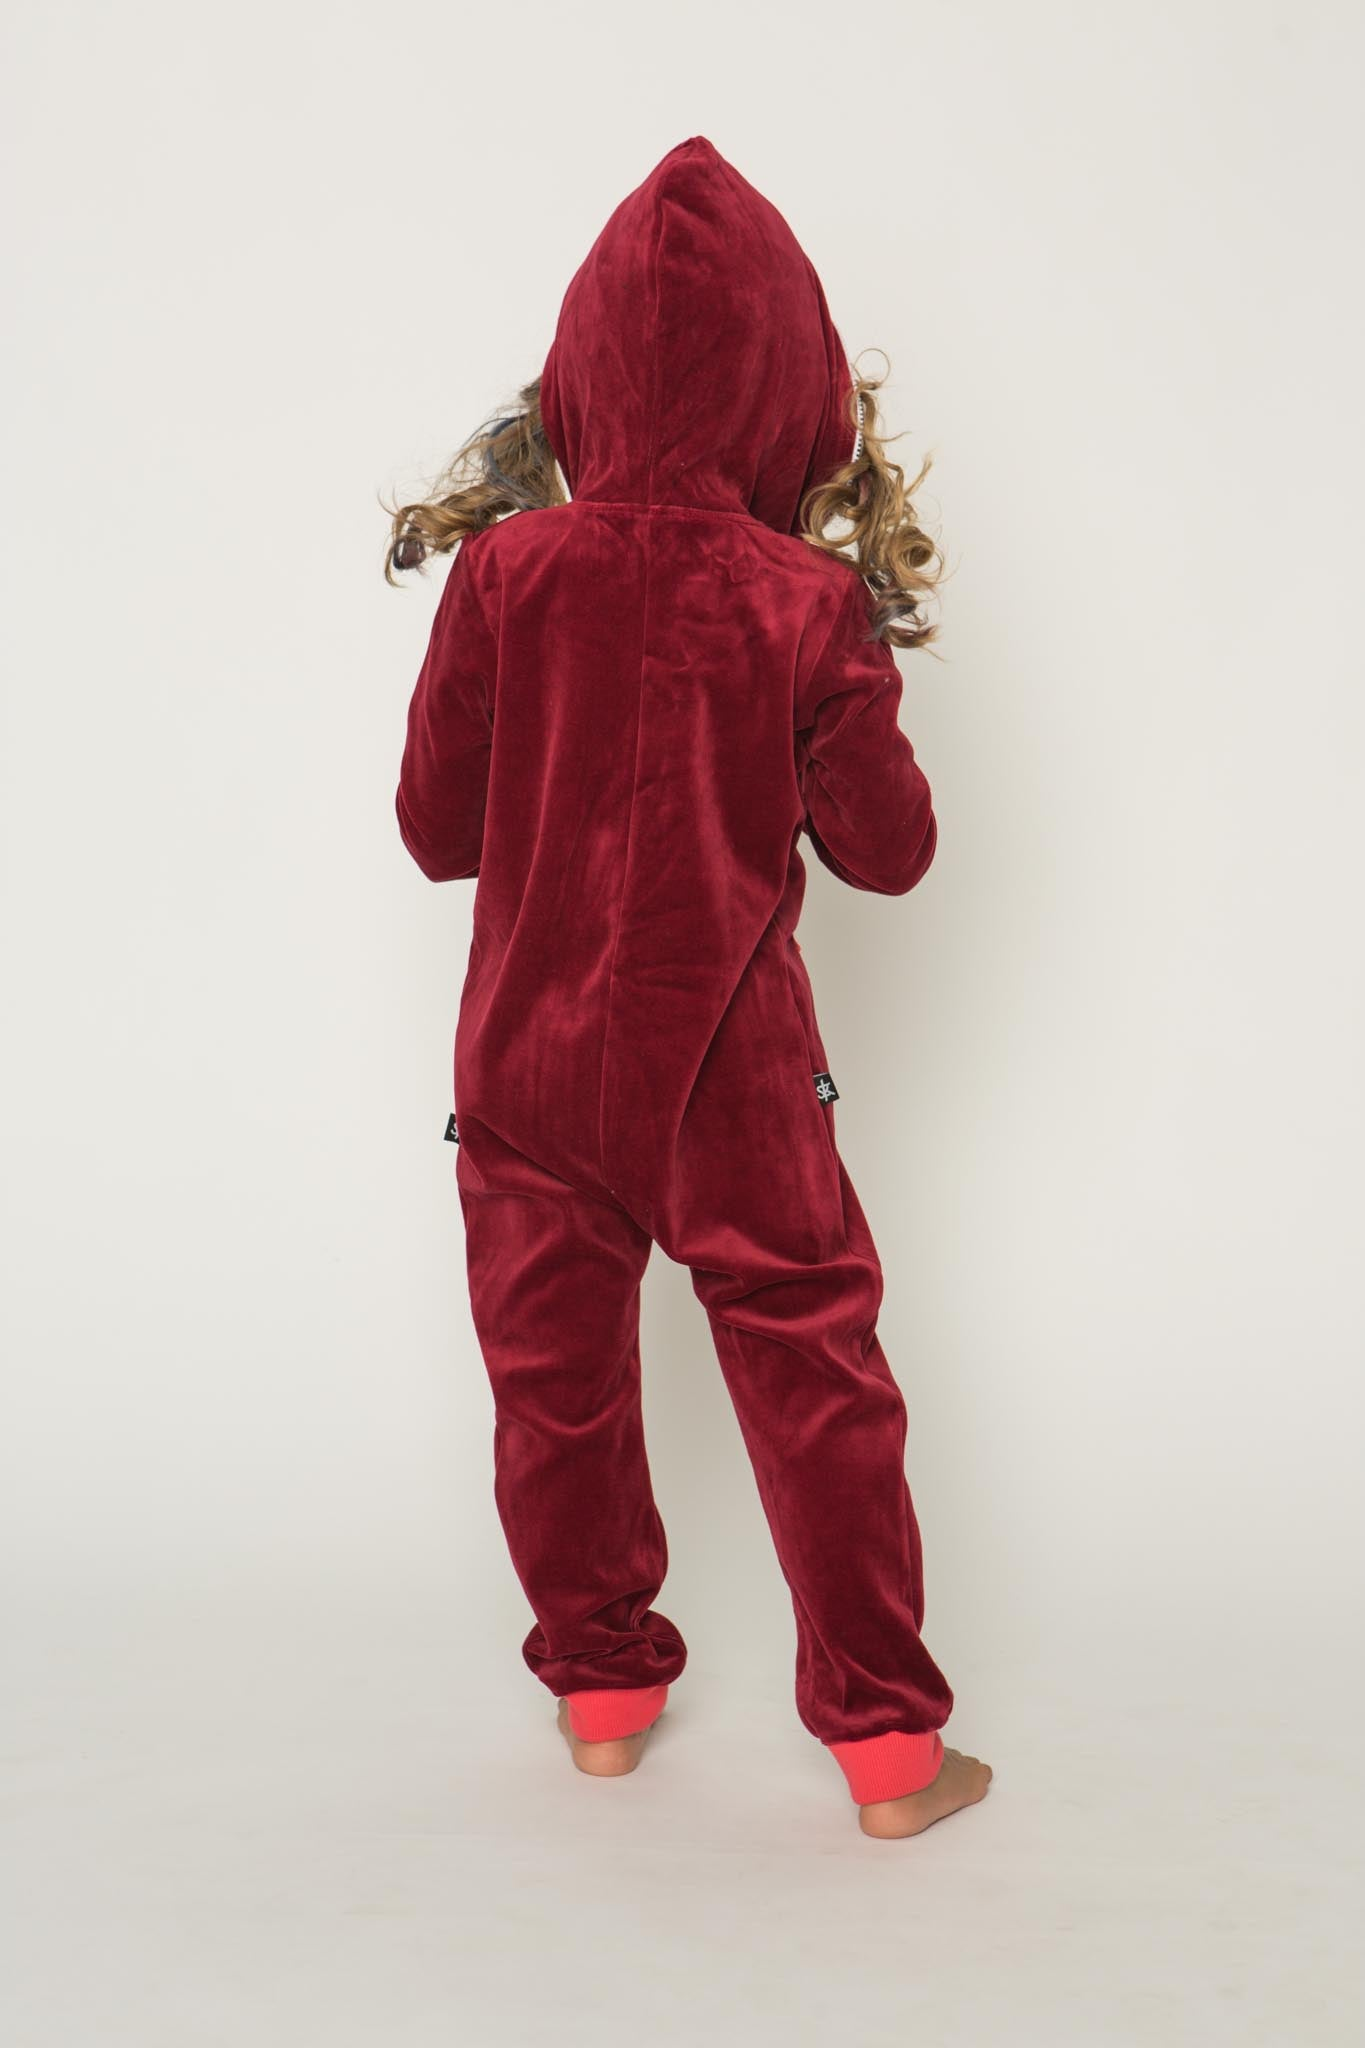 Sofa Killer burgundy unisex kids velours onesie